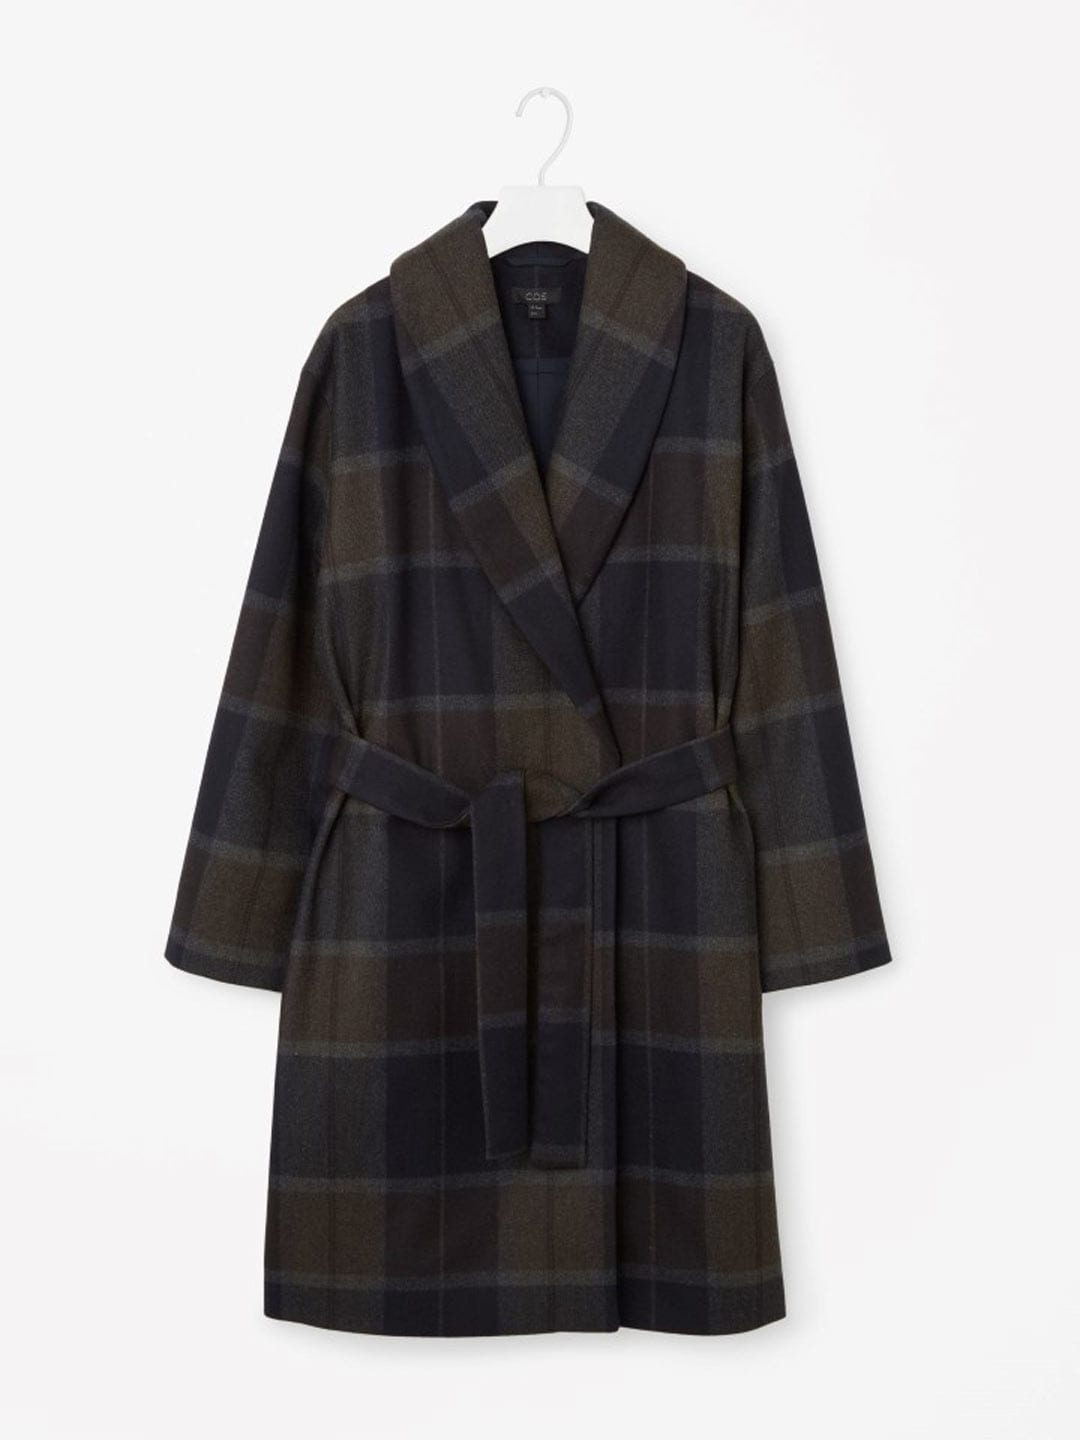 Best Winter Coats | COS Shawl Collared Coat in Check